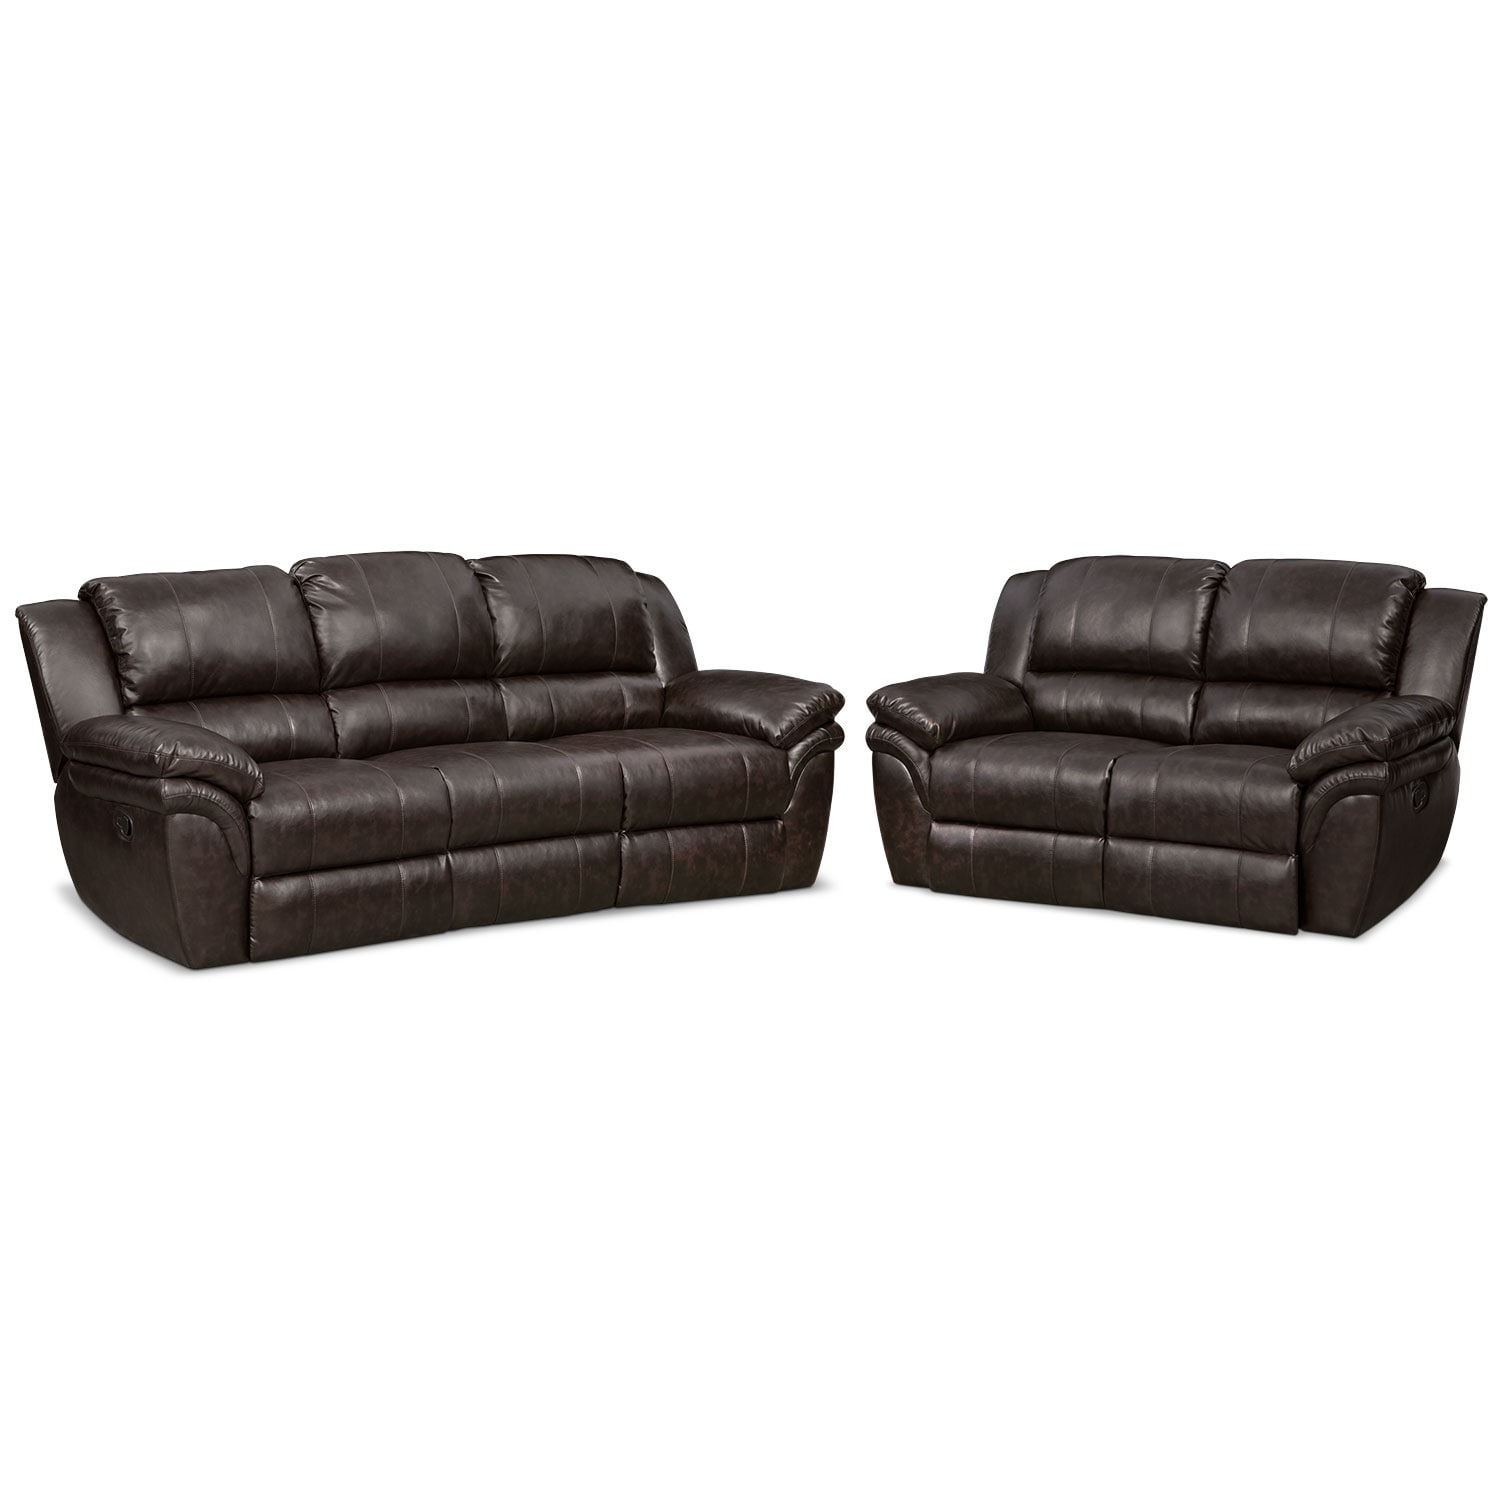 Living Room Furniture - Omni Brown 2 Pc. Manual Reclining Living Room